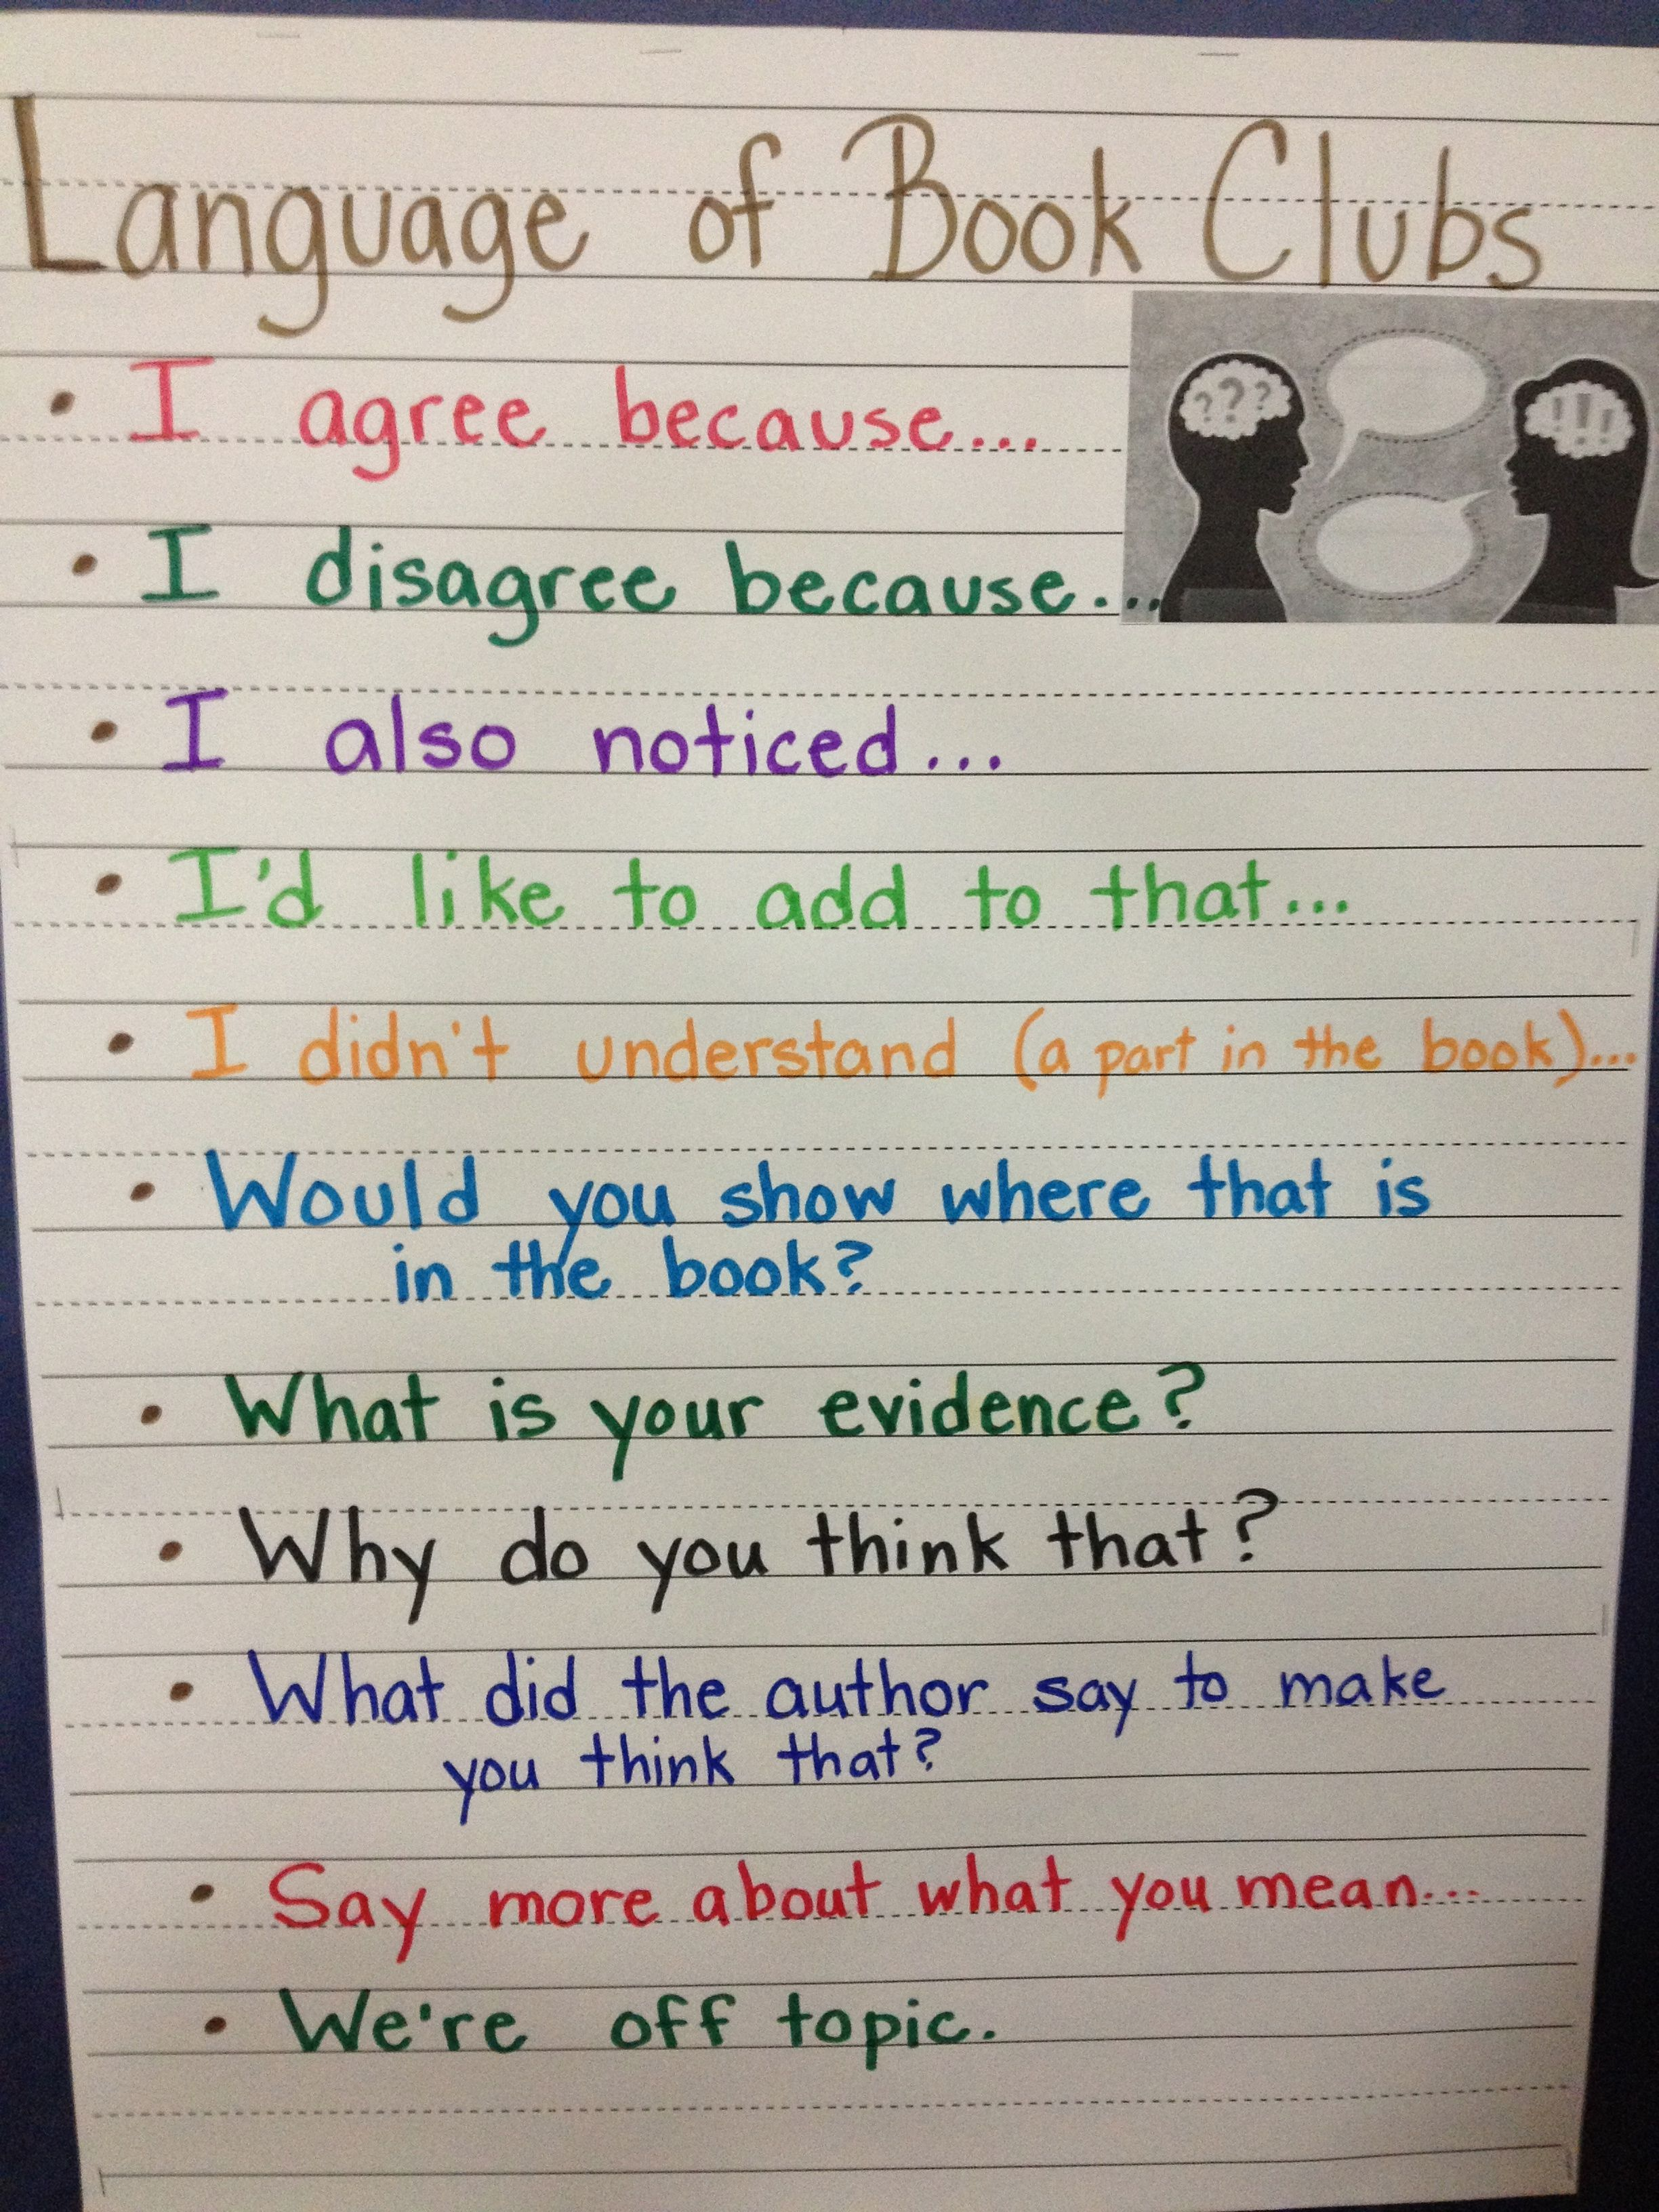 These Sentence Starters And Prompts Were An Important Part